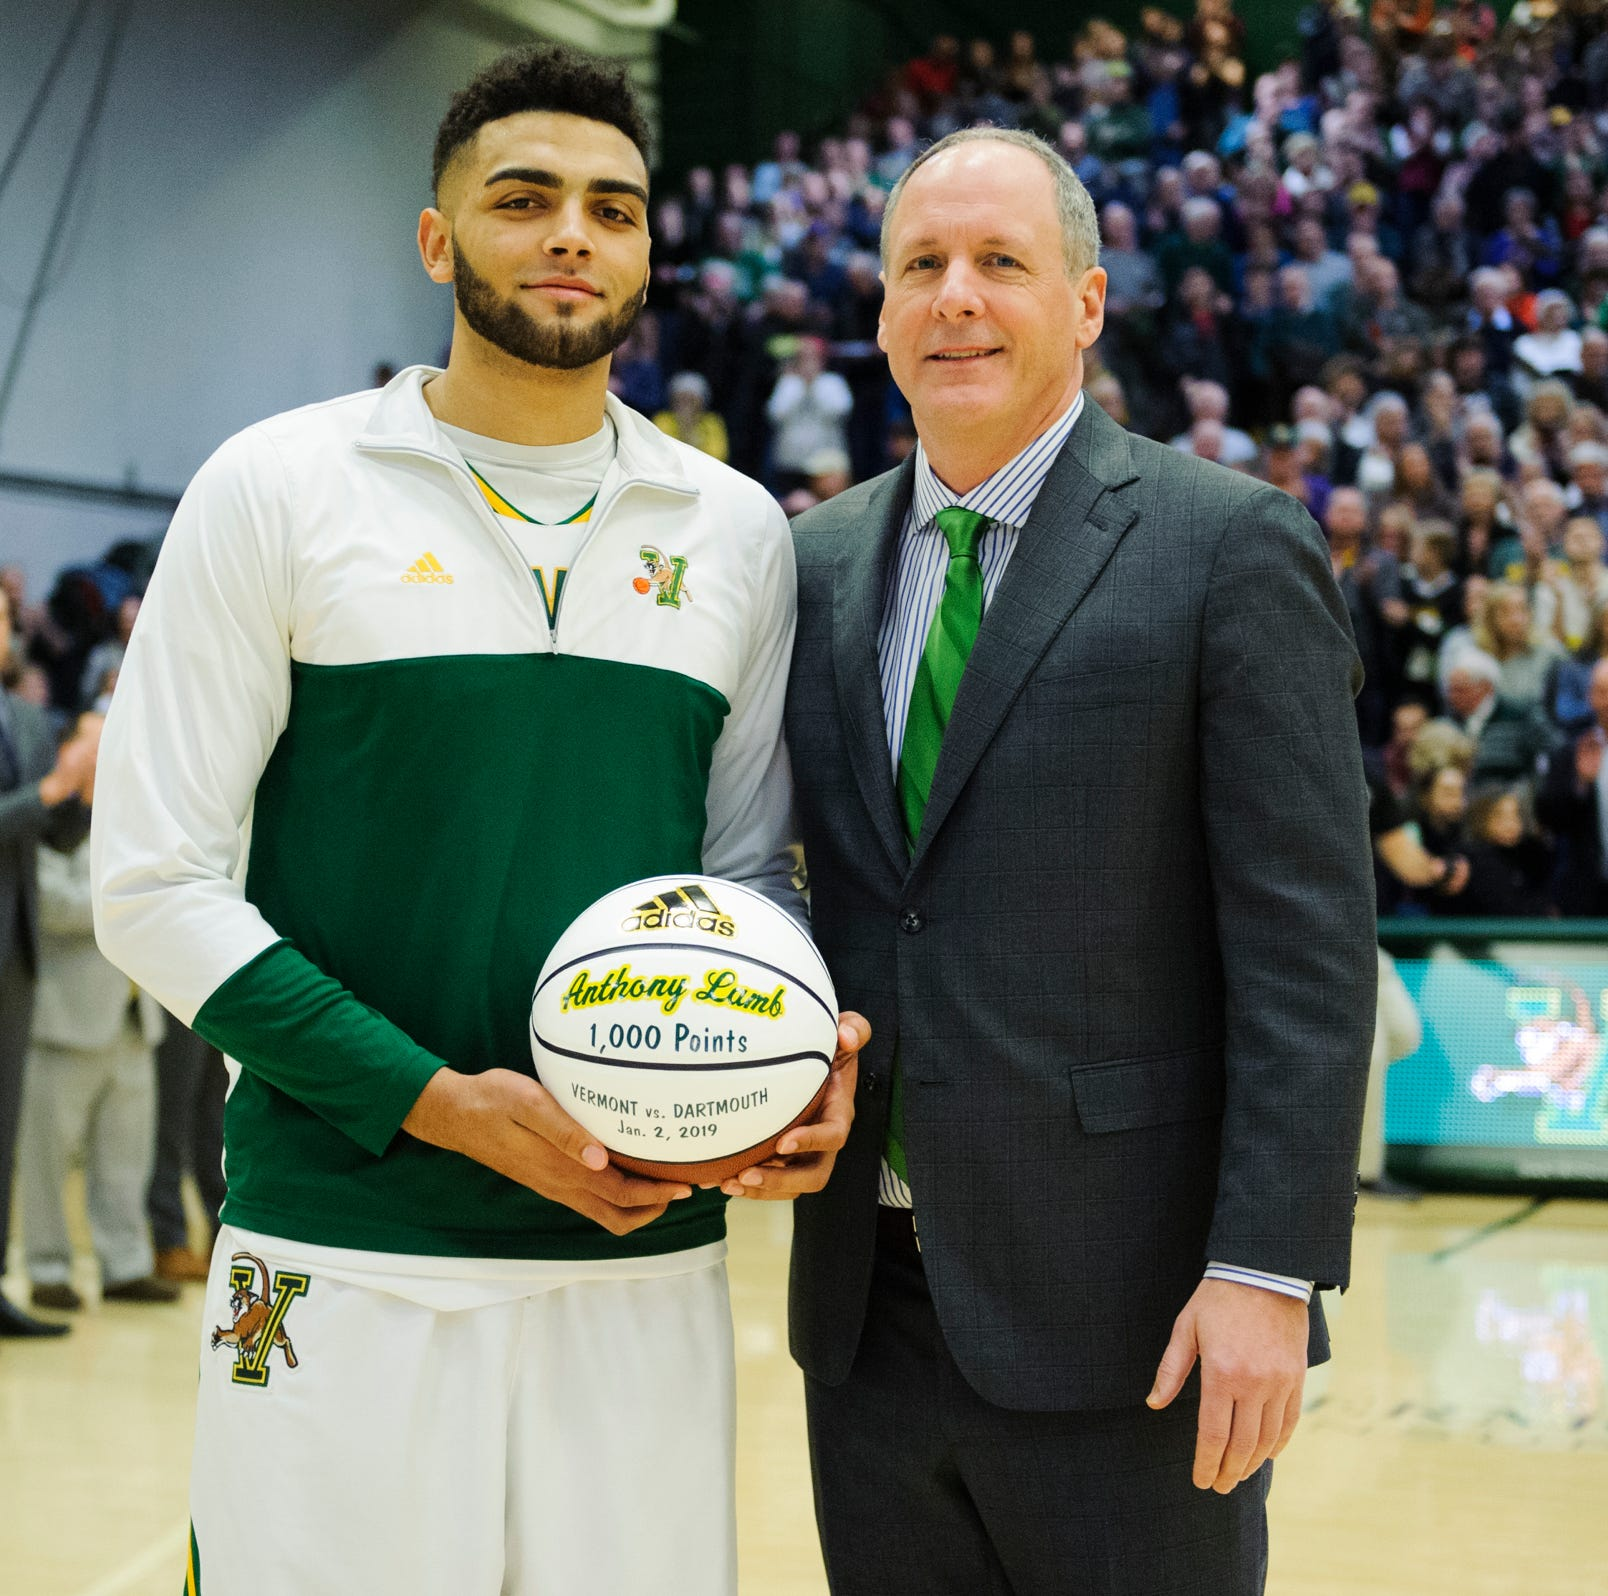 UVM basketball's Anthony Lamb named America East player of the year; Becker also honored